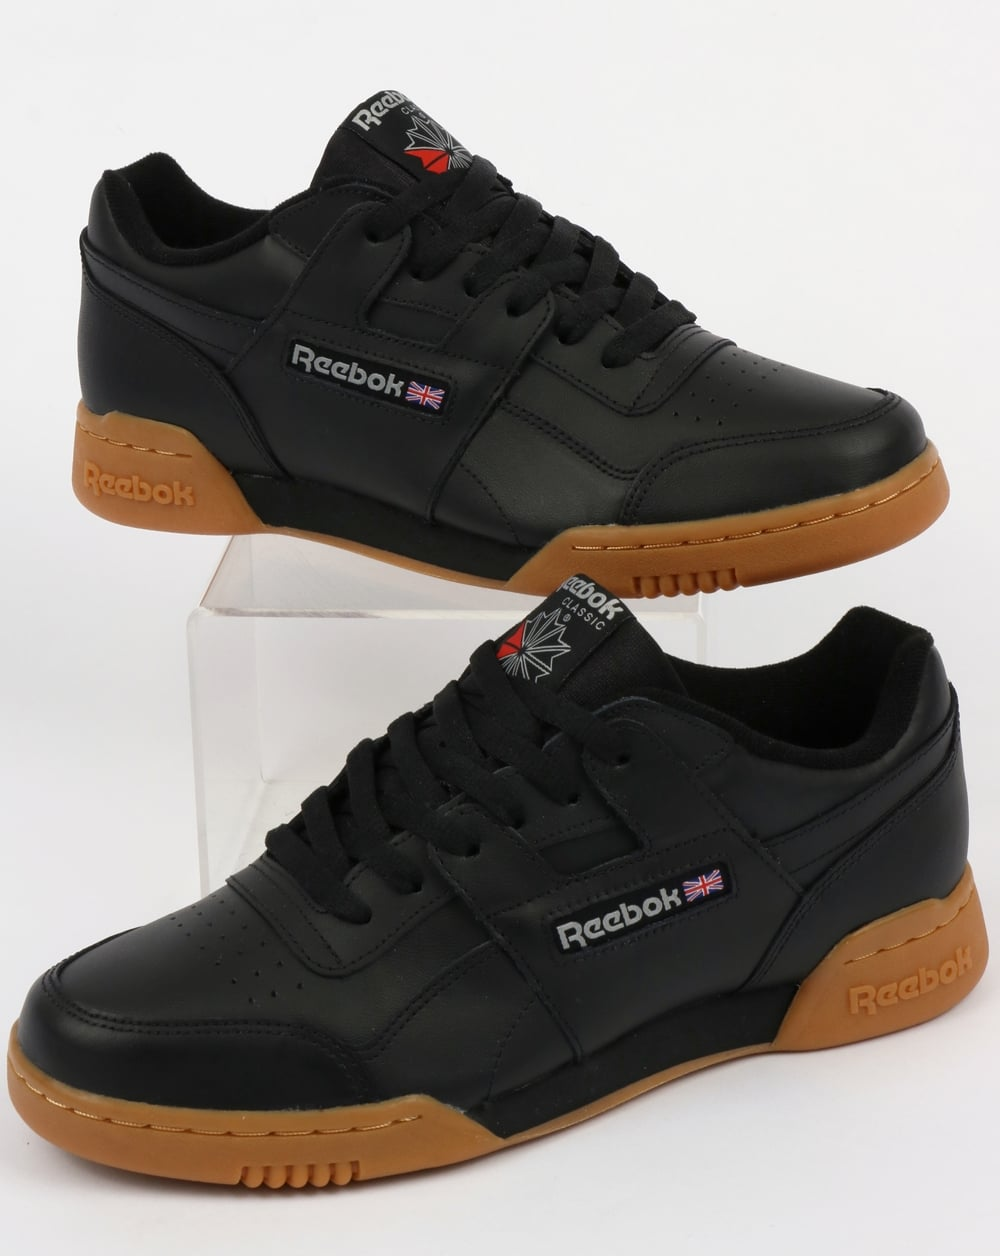 outlet store a5dca ab565 Reebok Reebok Workout Plus Trainers Black Carbon Gum